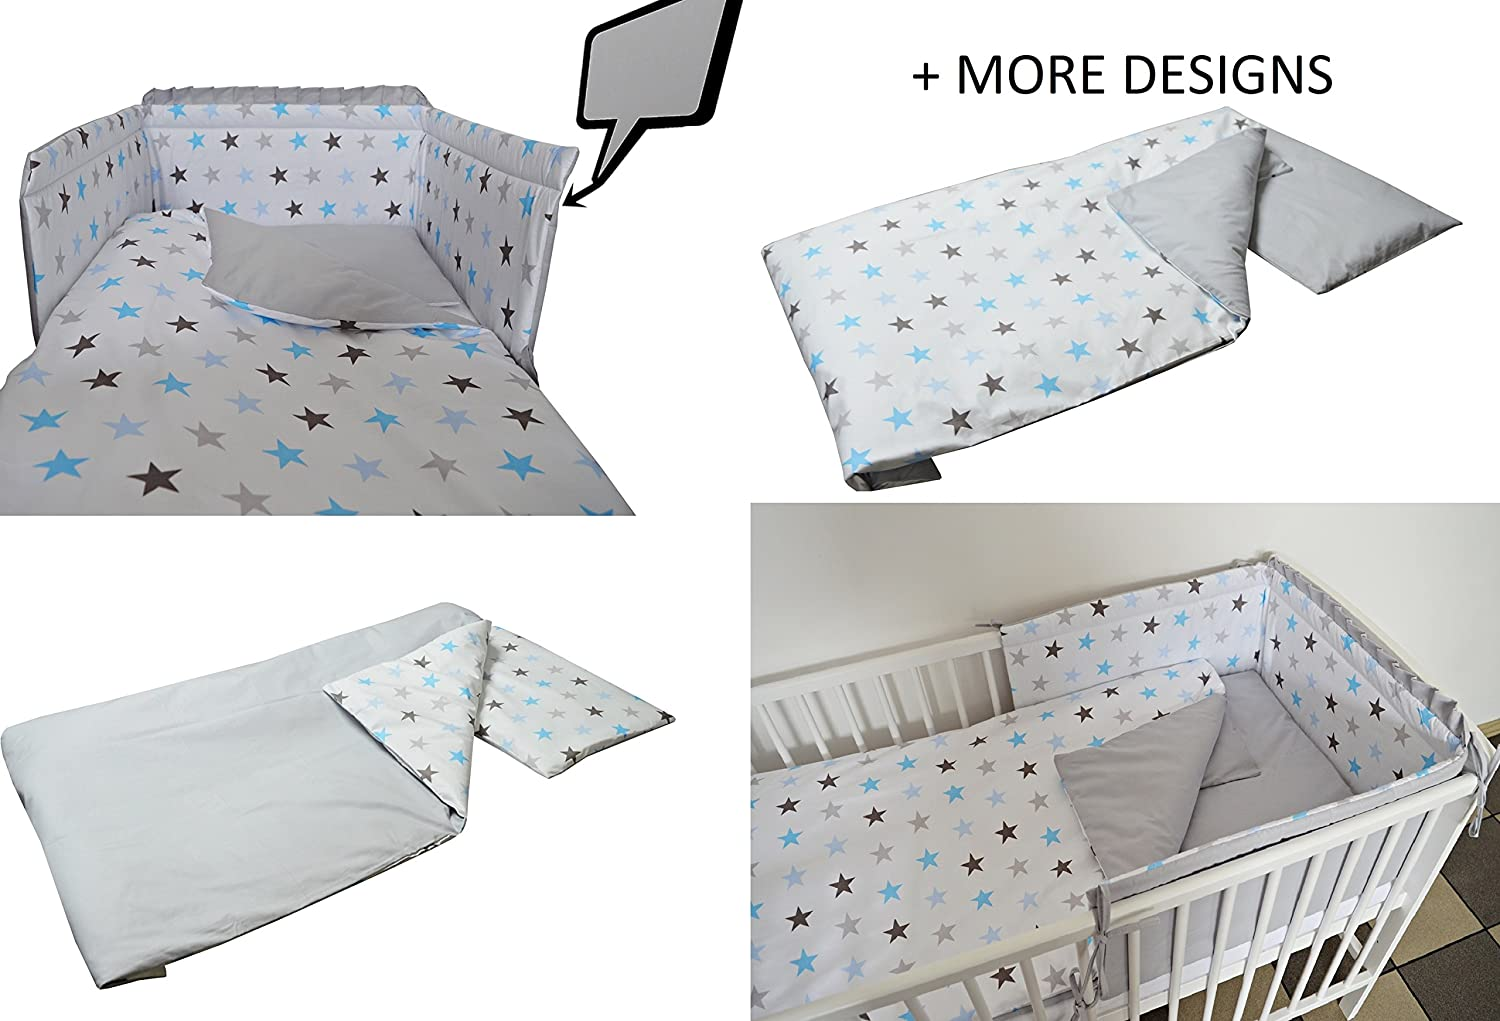 Stars-Elephant- COT Size 120X60, Black Sheep//Black Zigzag 3 pc Baby Bedding Set for COT 120X60 OR COT Bed 140X70